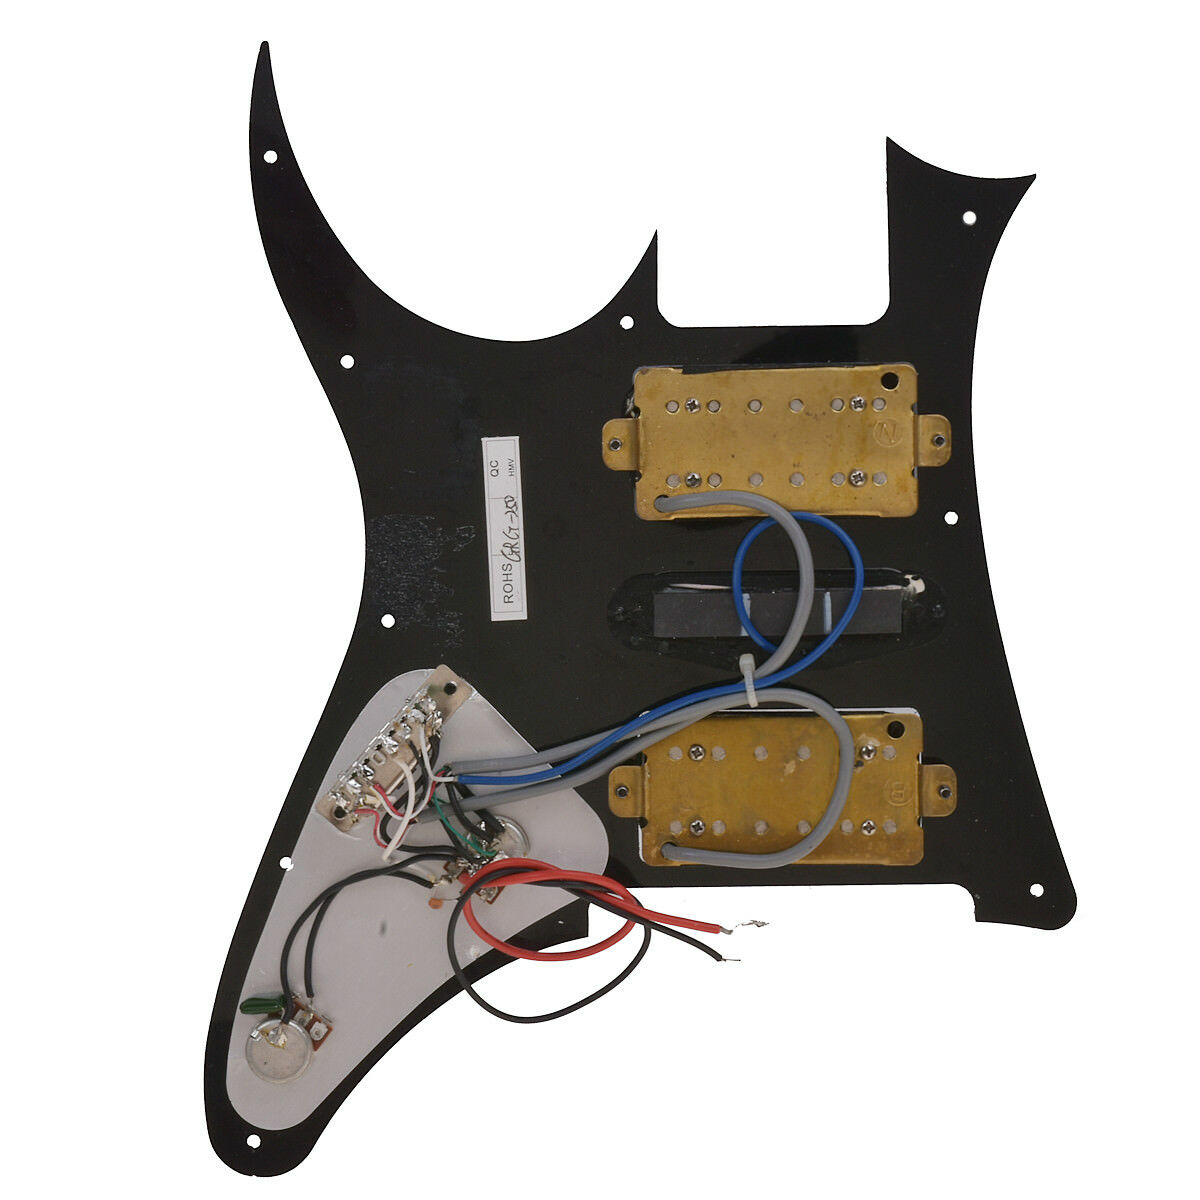 loaded prewired pickguard for ibanez grg250 electric guitar parts hsh black 634458679145 ebay. Black Bedroom Furniture Sets. Home Design Ideas